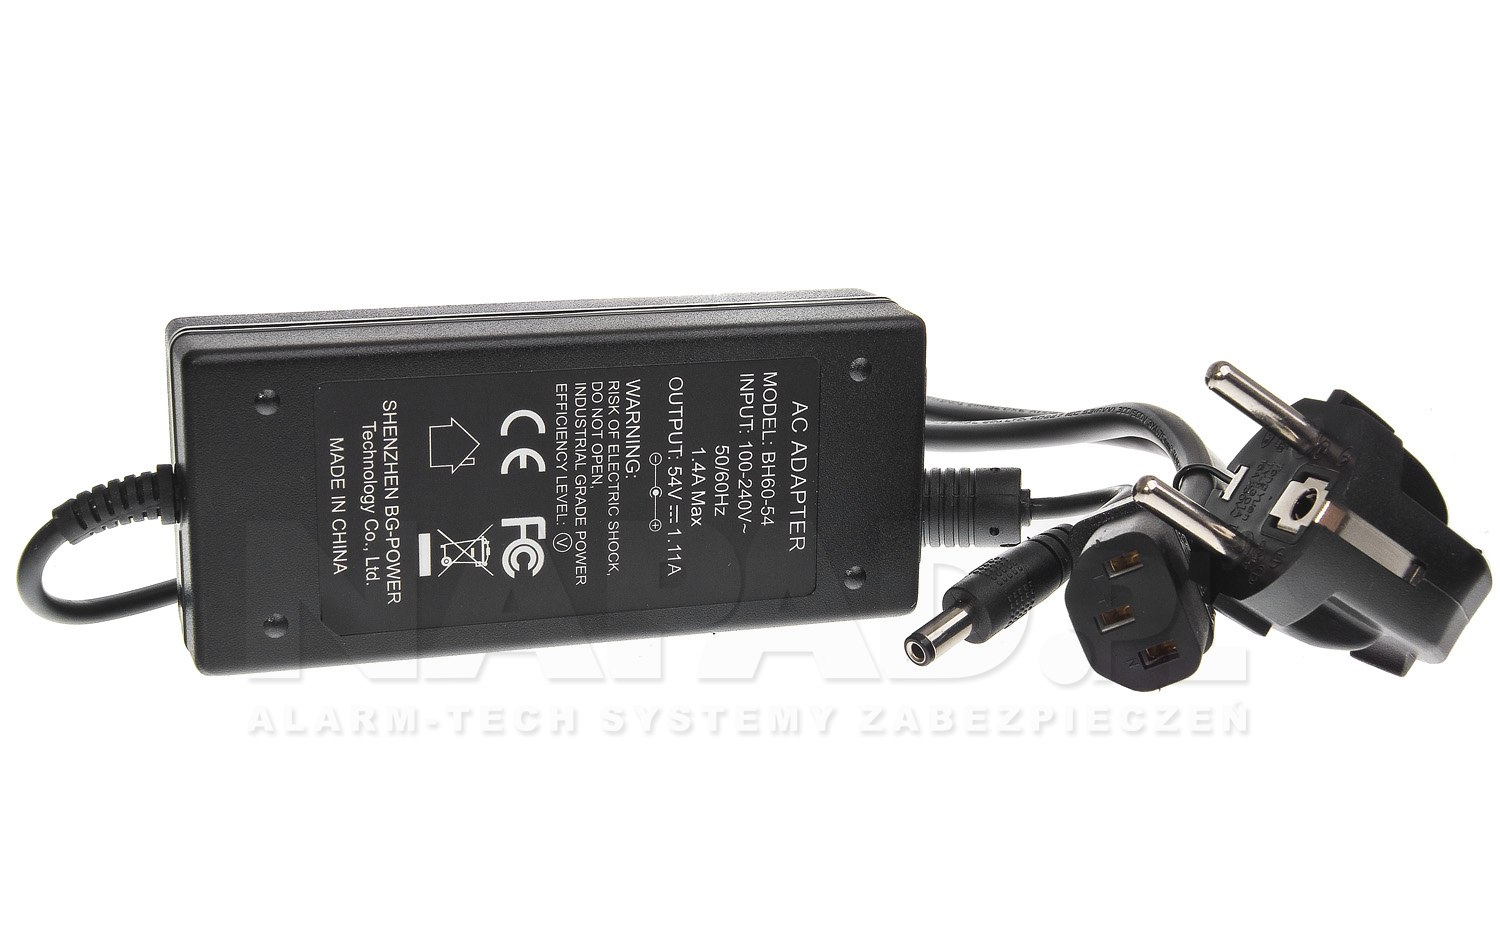 Zasilacz impulsowy do switchy PoE 60W